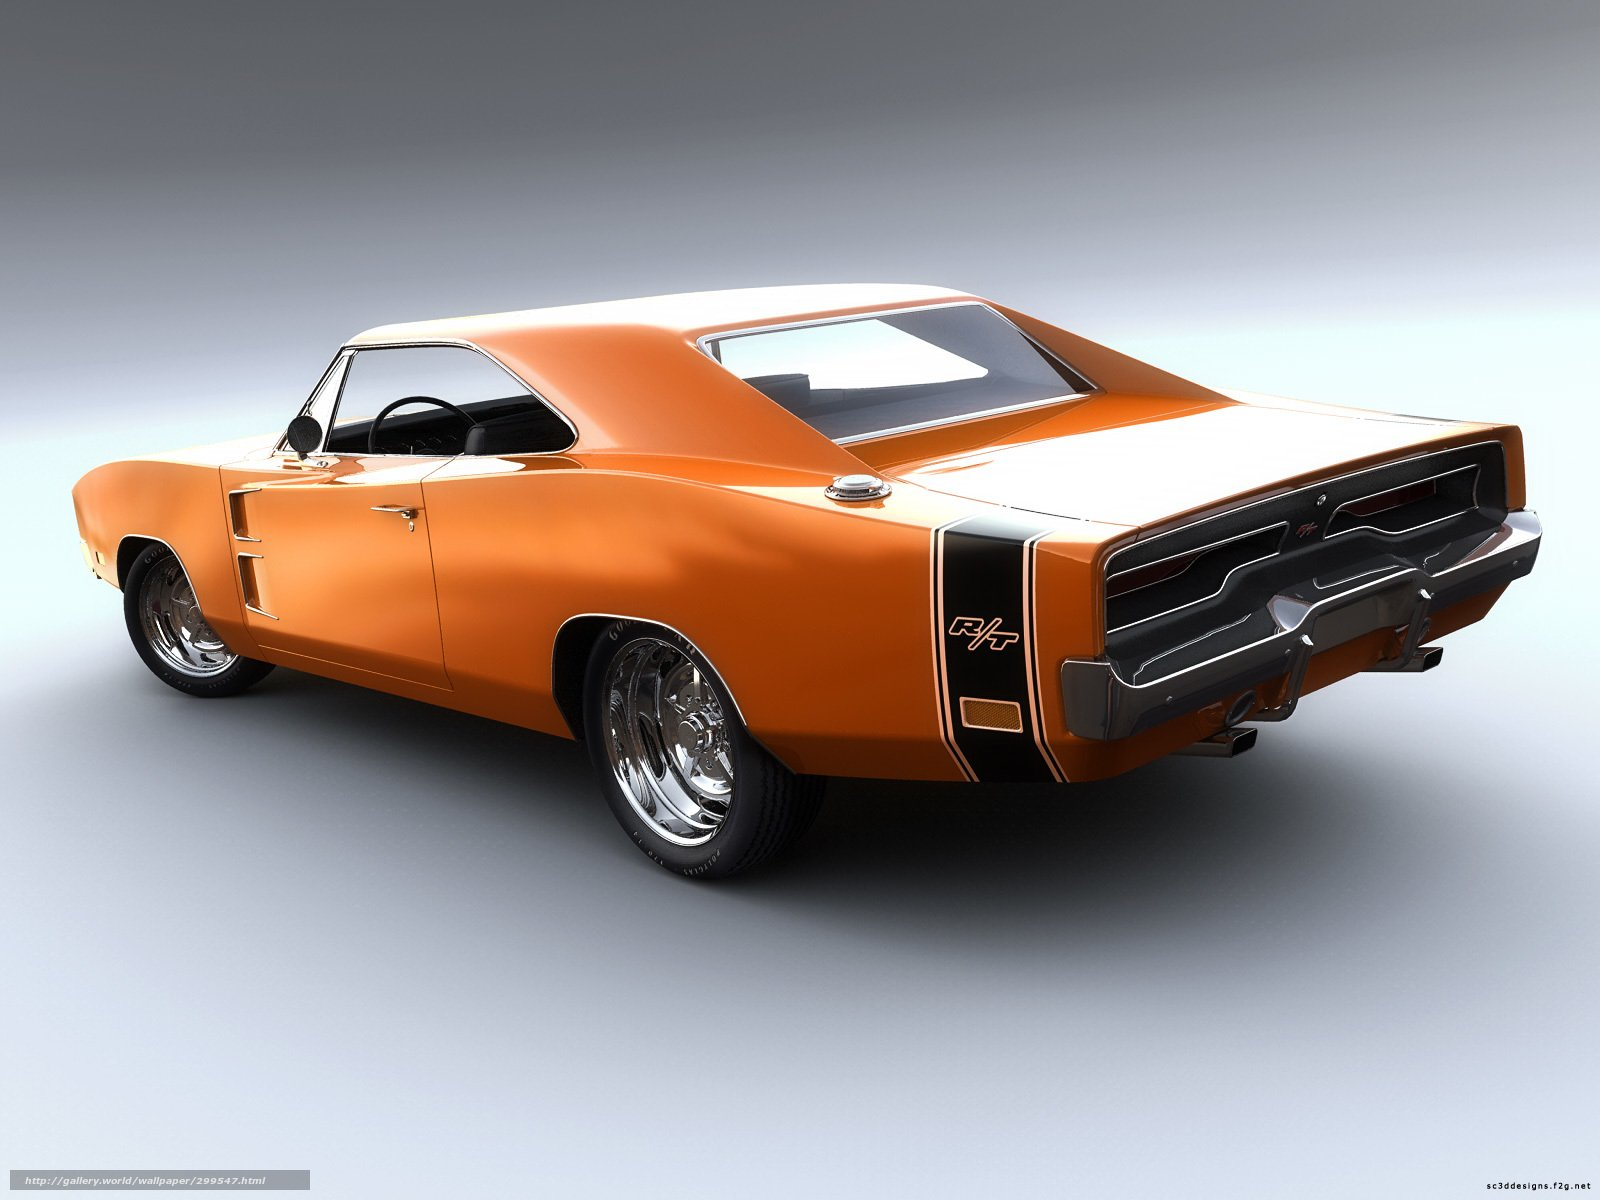 download wallpaper car muscle car power beauty desktop Car 1600x1200